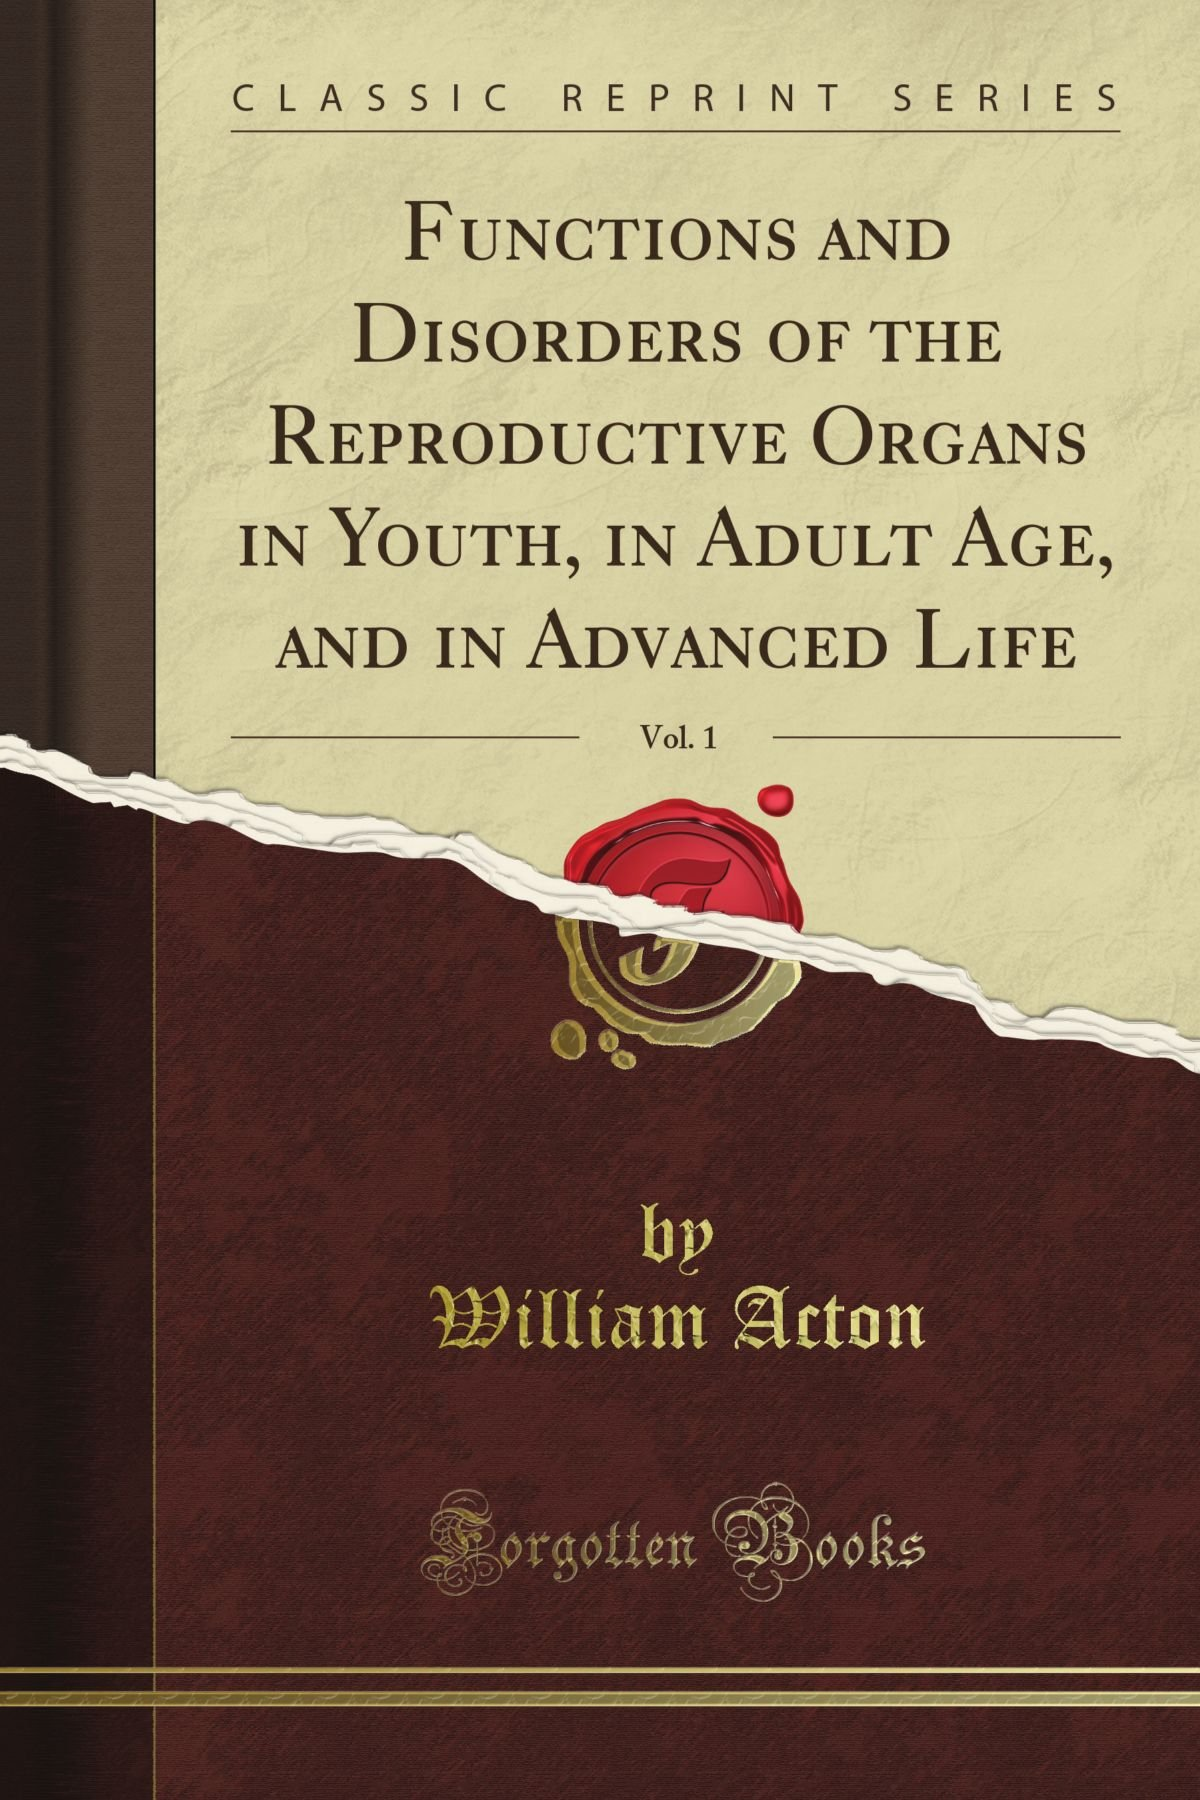 Download Functions and Disorders of the Reproductive Organs in Youth, in Adult Age, and in Advanced Life, Vol. 1 (Classic Reprint) PDF